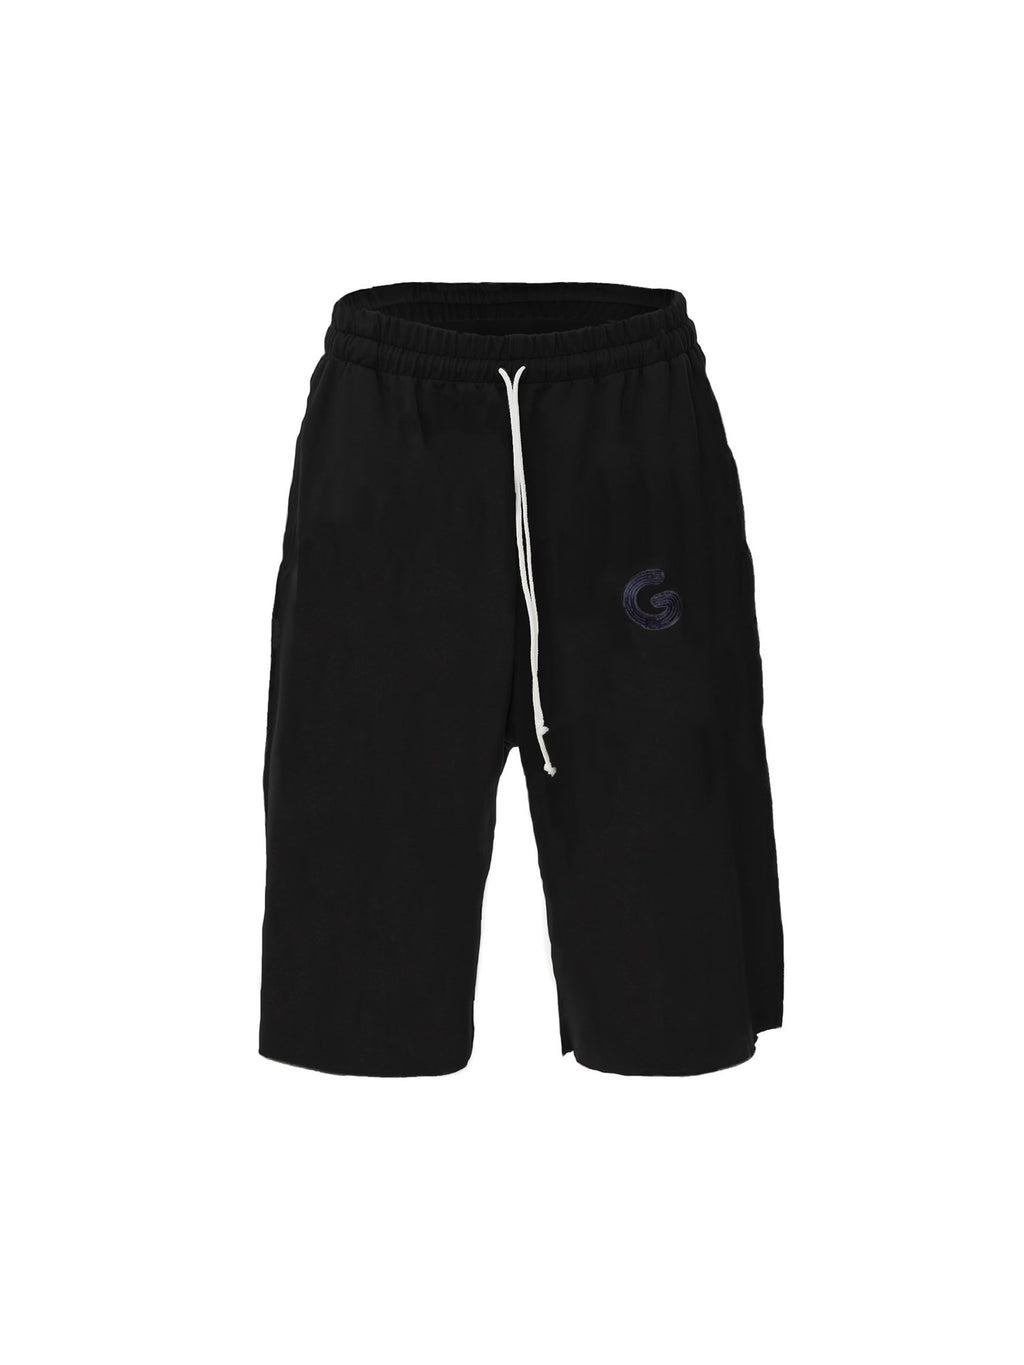 TheG Essential Shorts // black